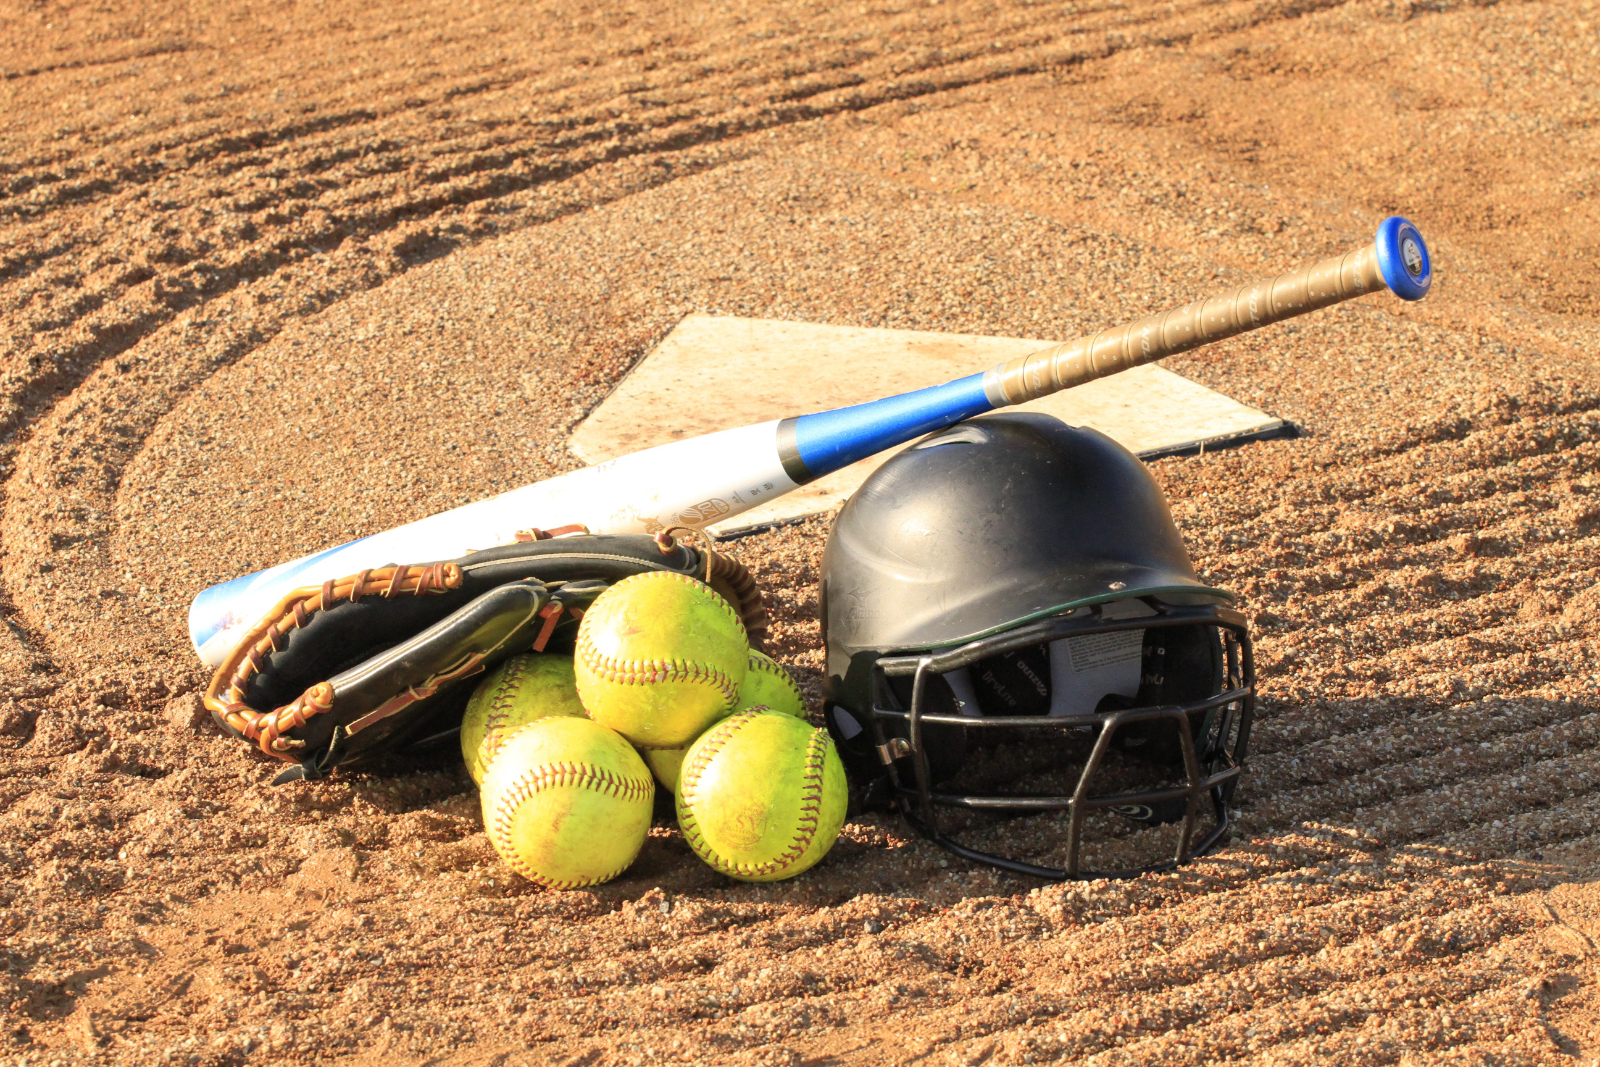 First Softball game of 2019  Thursday 8/15 vs Washington Bulldogs.